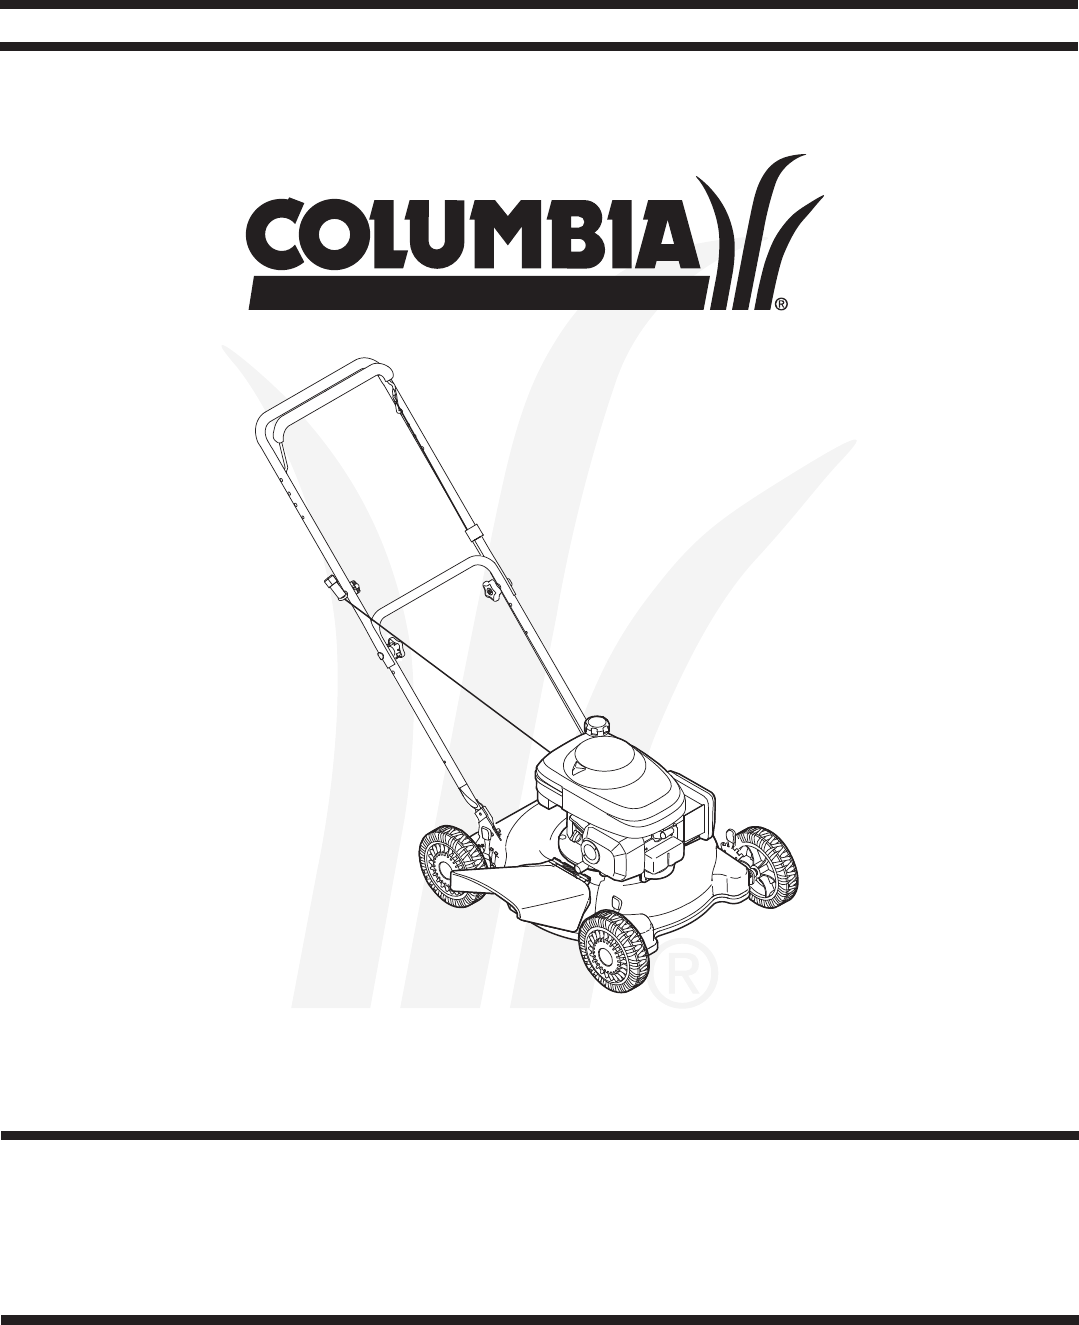 Columbian Home Products Lawn Mower 100 User Guide